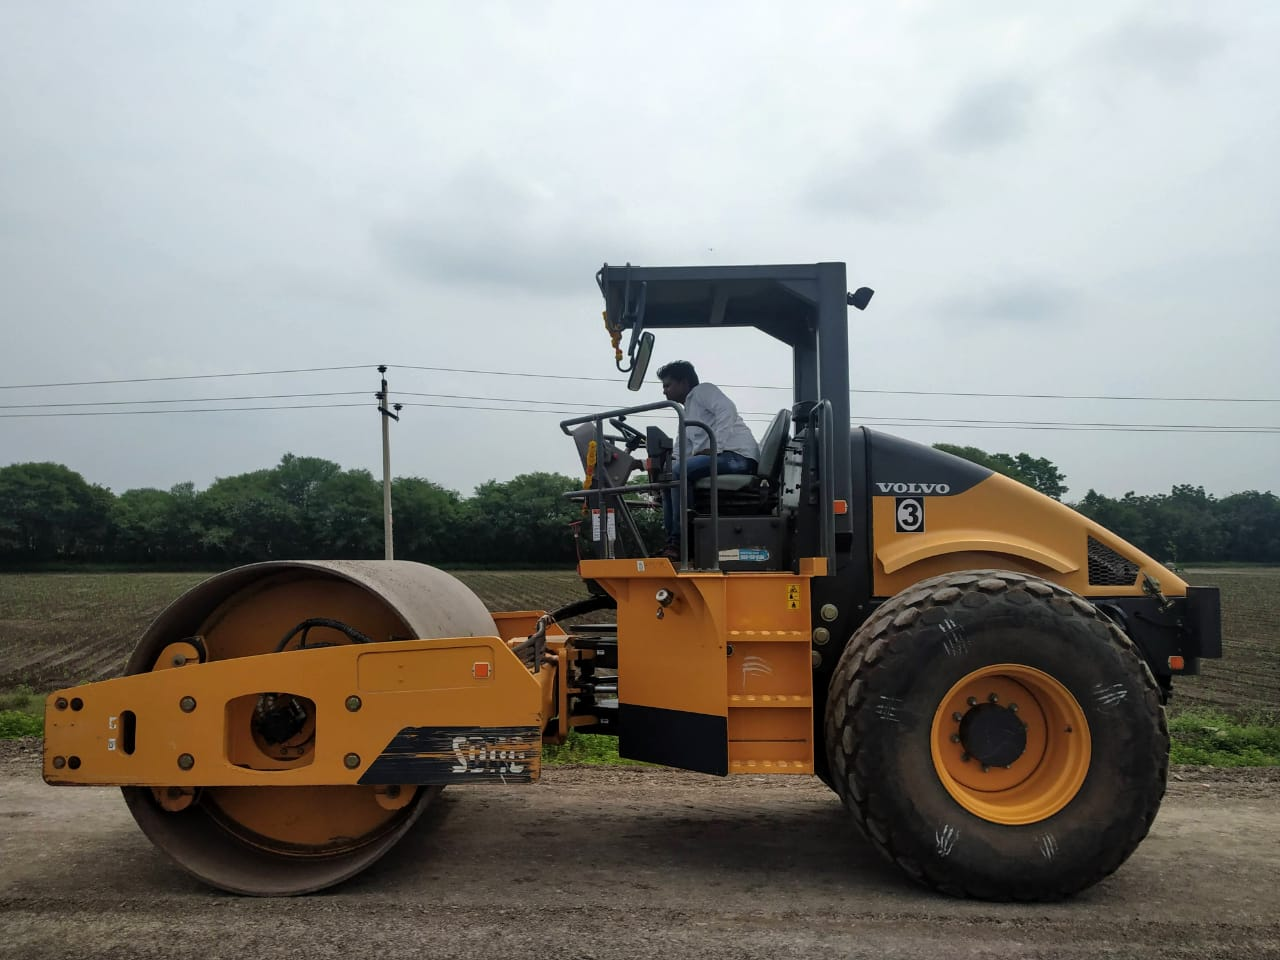 2017 Volvo SD110 Compactor for rent in Dharwad by owners online at best price, Product ID: 449964, Image - Infra Bazaar